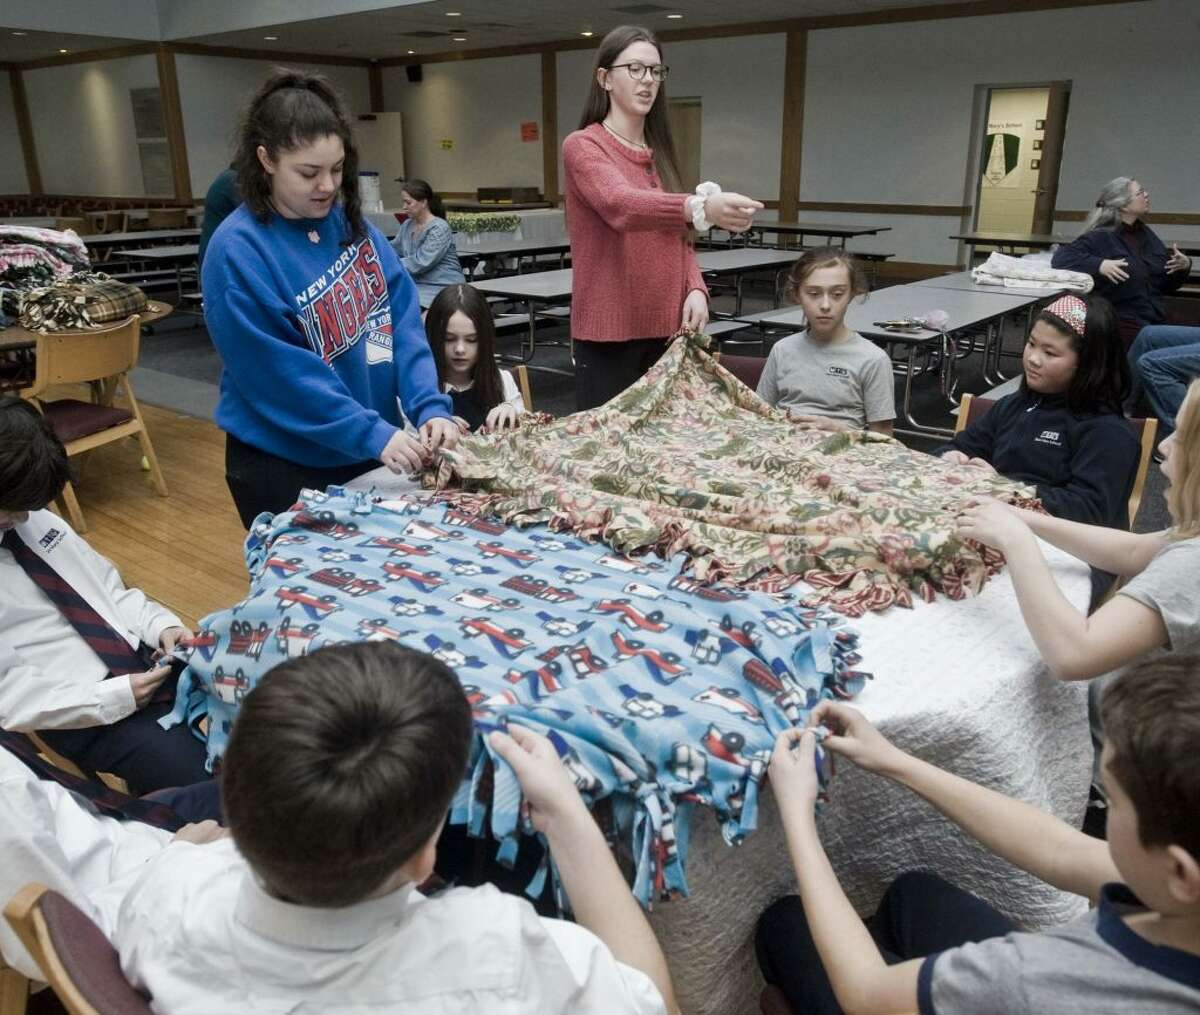 Ridgefield High School senior Bridget Kager, red shirt, works on blankets with Keleigh Zuckert, blue shirt, a senior at Immaculate High School, on Feb. 6 at St. Mary's. The high schoolers were helped by fourth and fifth grade students from Saint Mary's School. Kager, a member of Girl Scout Troop 50123, is making blankets and collecting backpacks for Family and Children's Aid in Danbury as part of her Gold Award project. - Scott Mullin/Hearst Connecticut Media